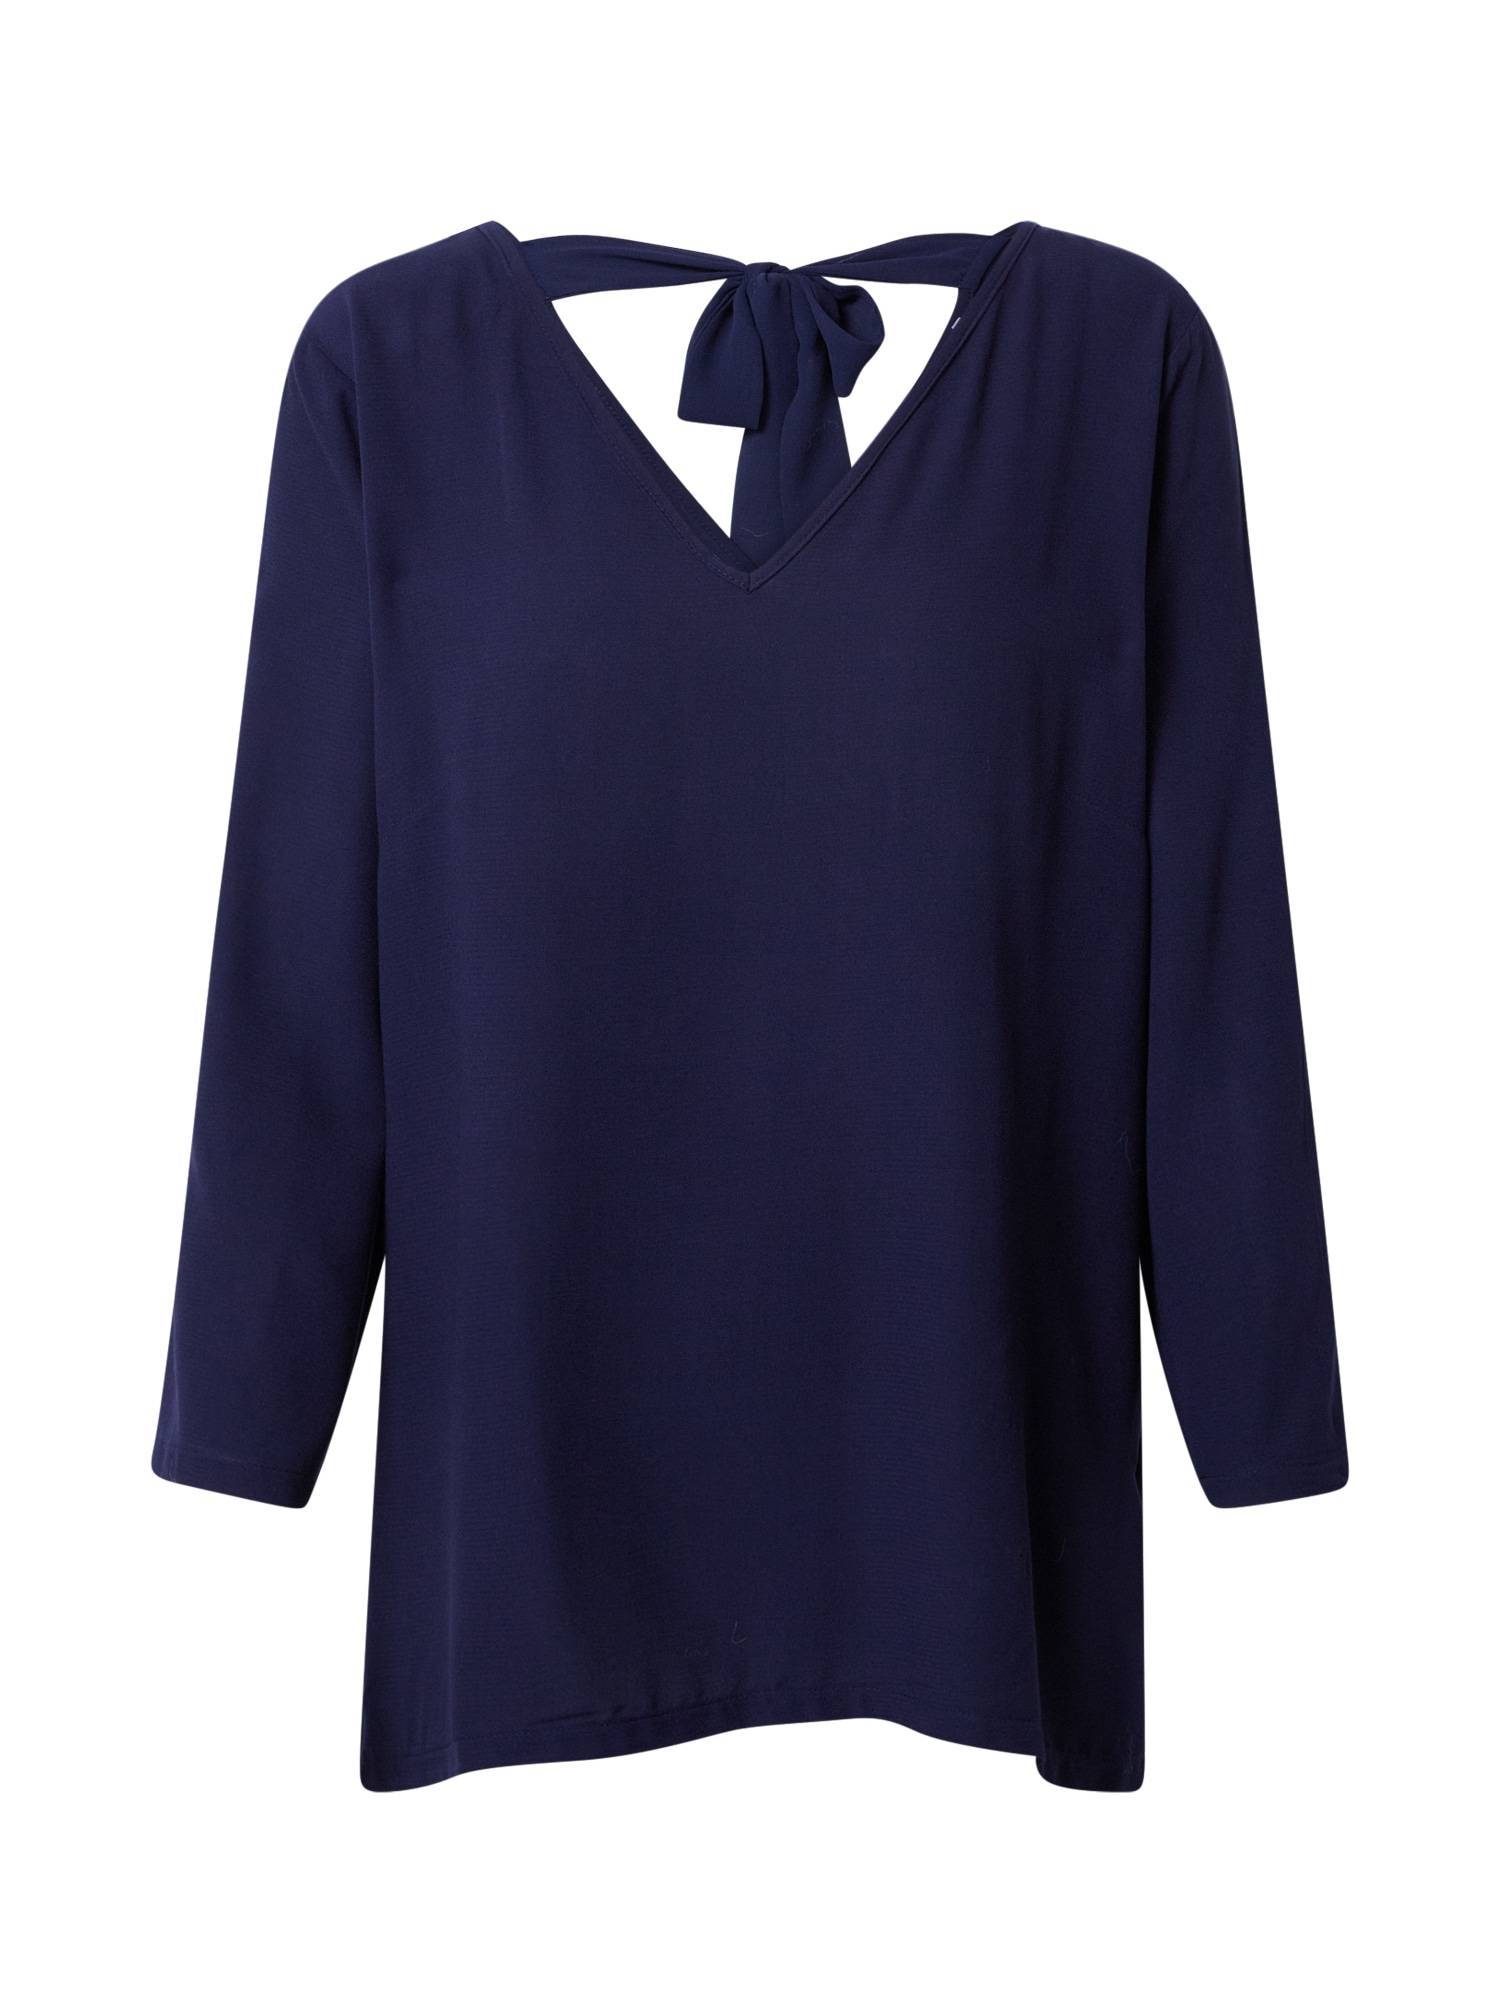 ABOUT YOU Chemisier 'Farine Blouse'  - Bleu - Taille: 36 - female